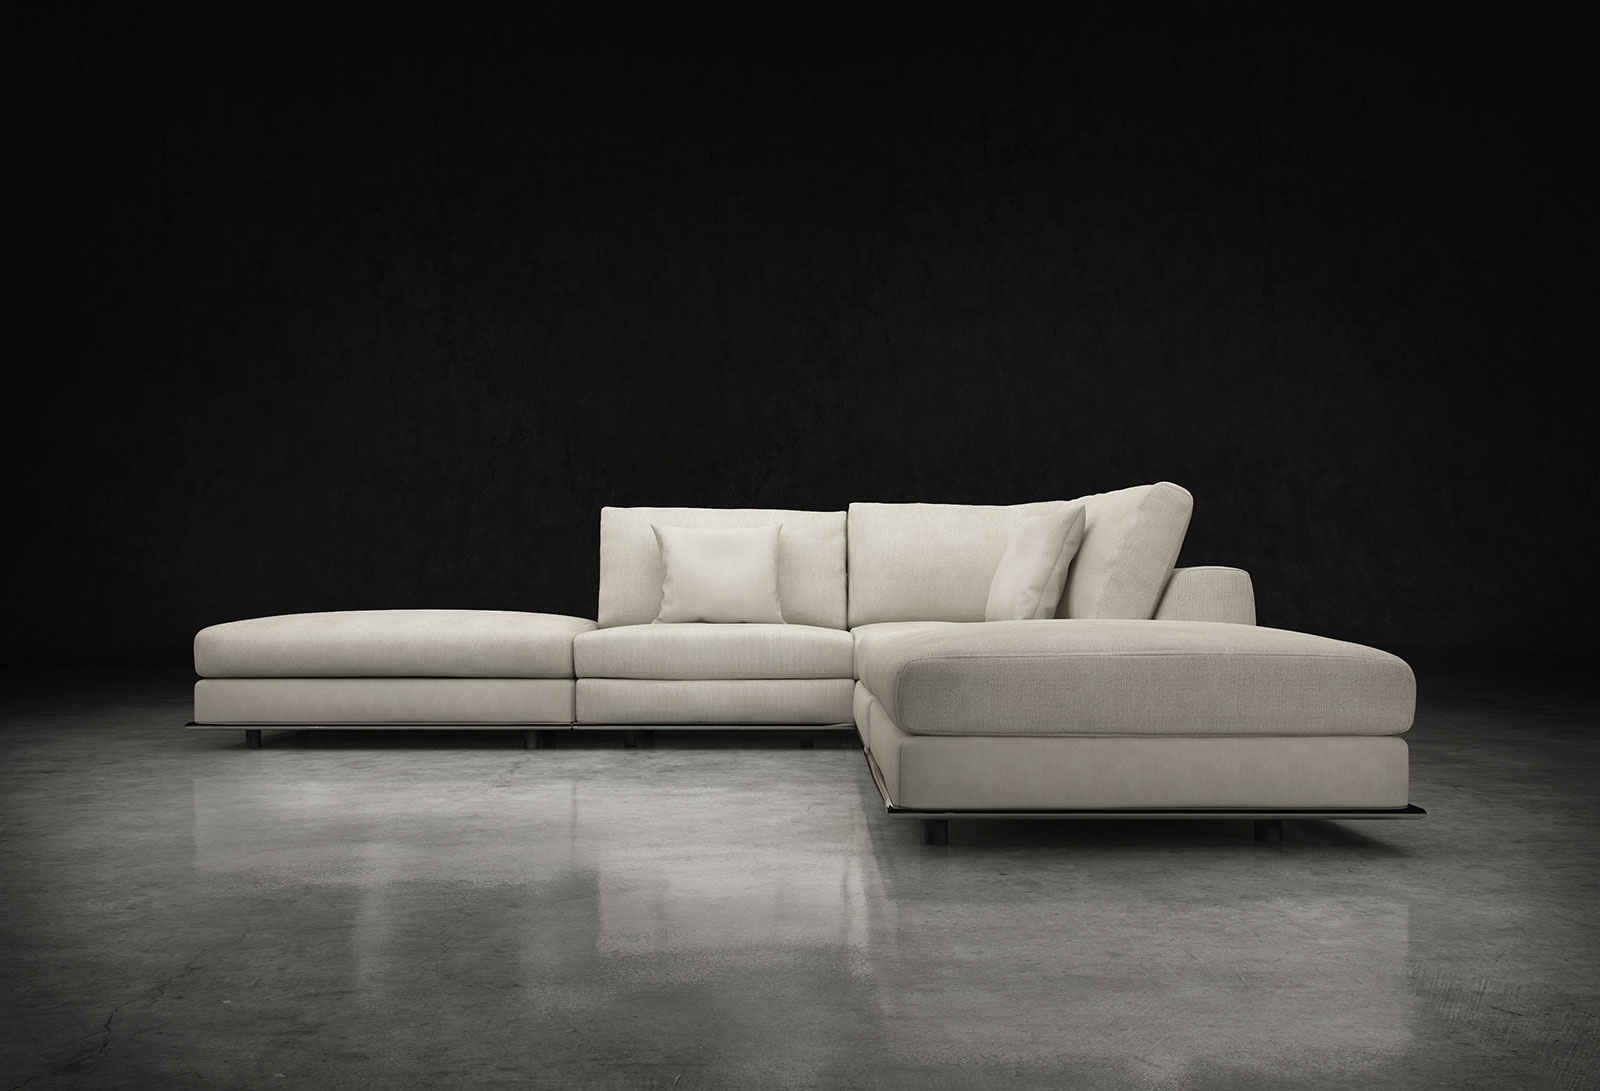 Armless Sectional Sofas Inside Armless Sectional Sofas (#7 of 12)